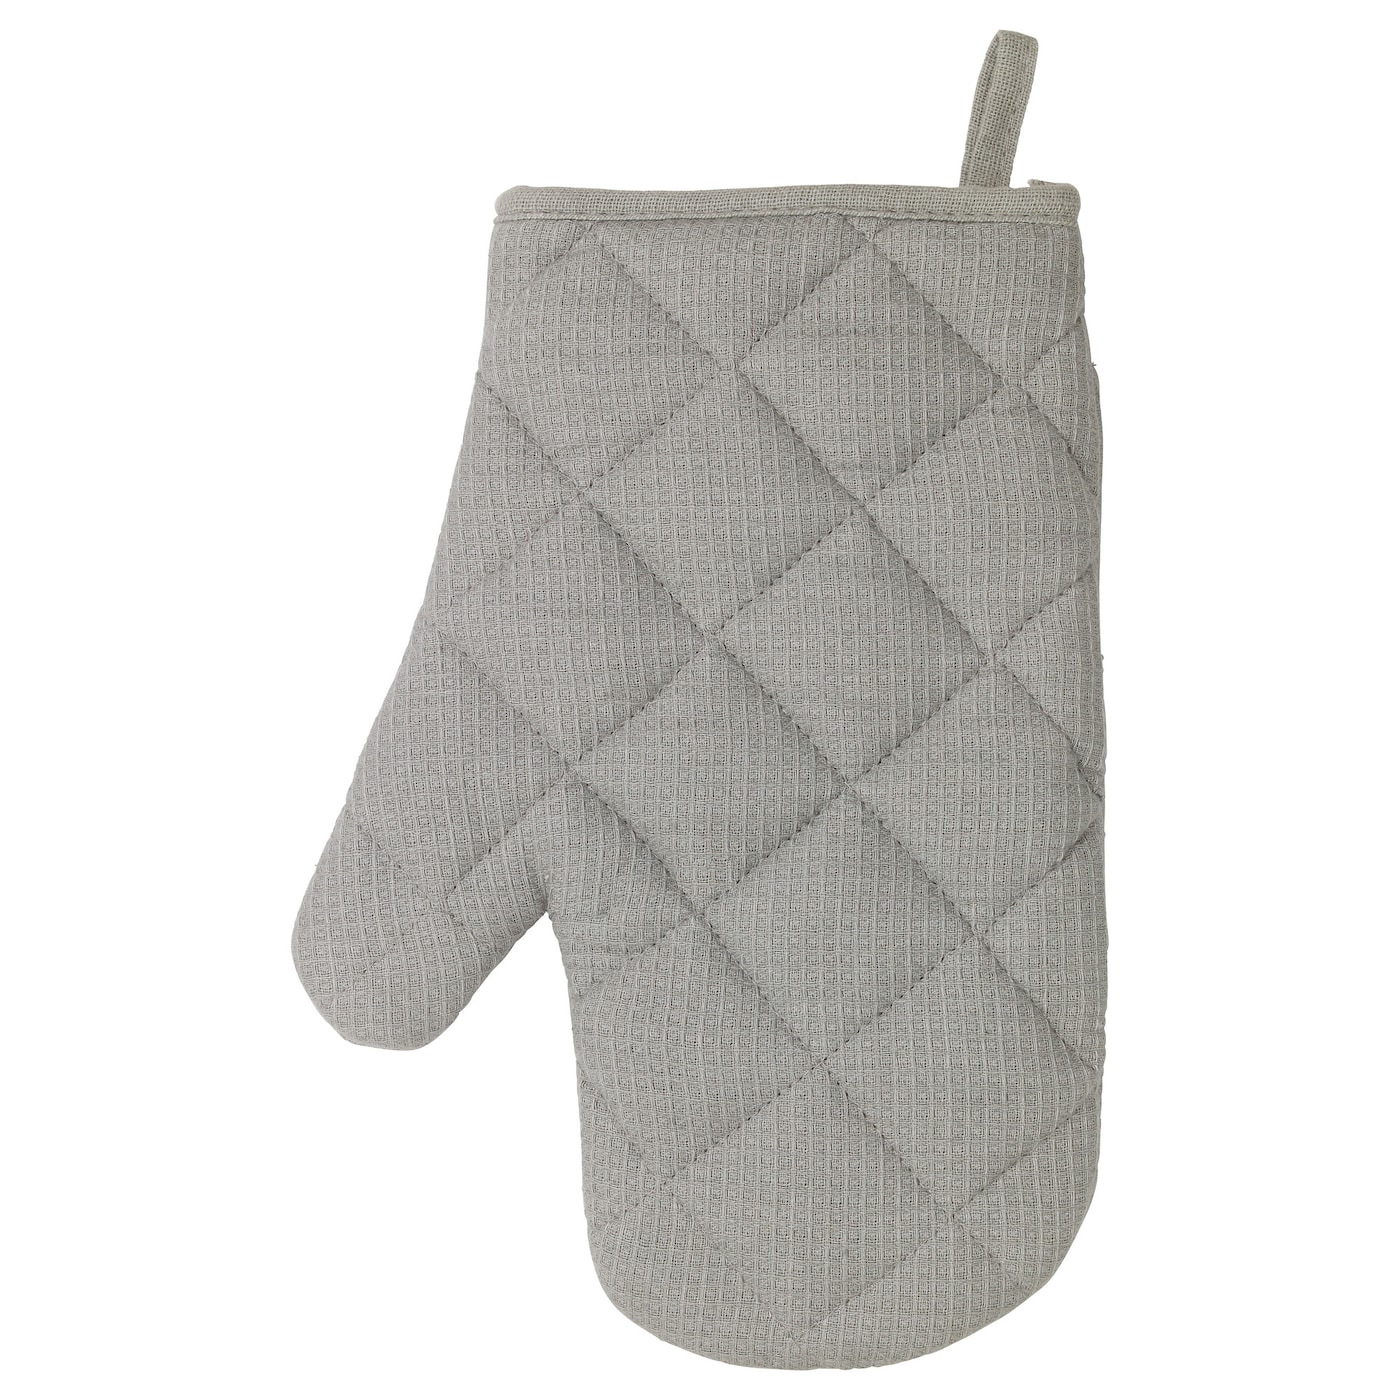 IKEA IRIS oven glove Felted polyester layer in between gives very good heat insulation.